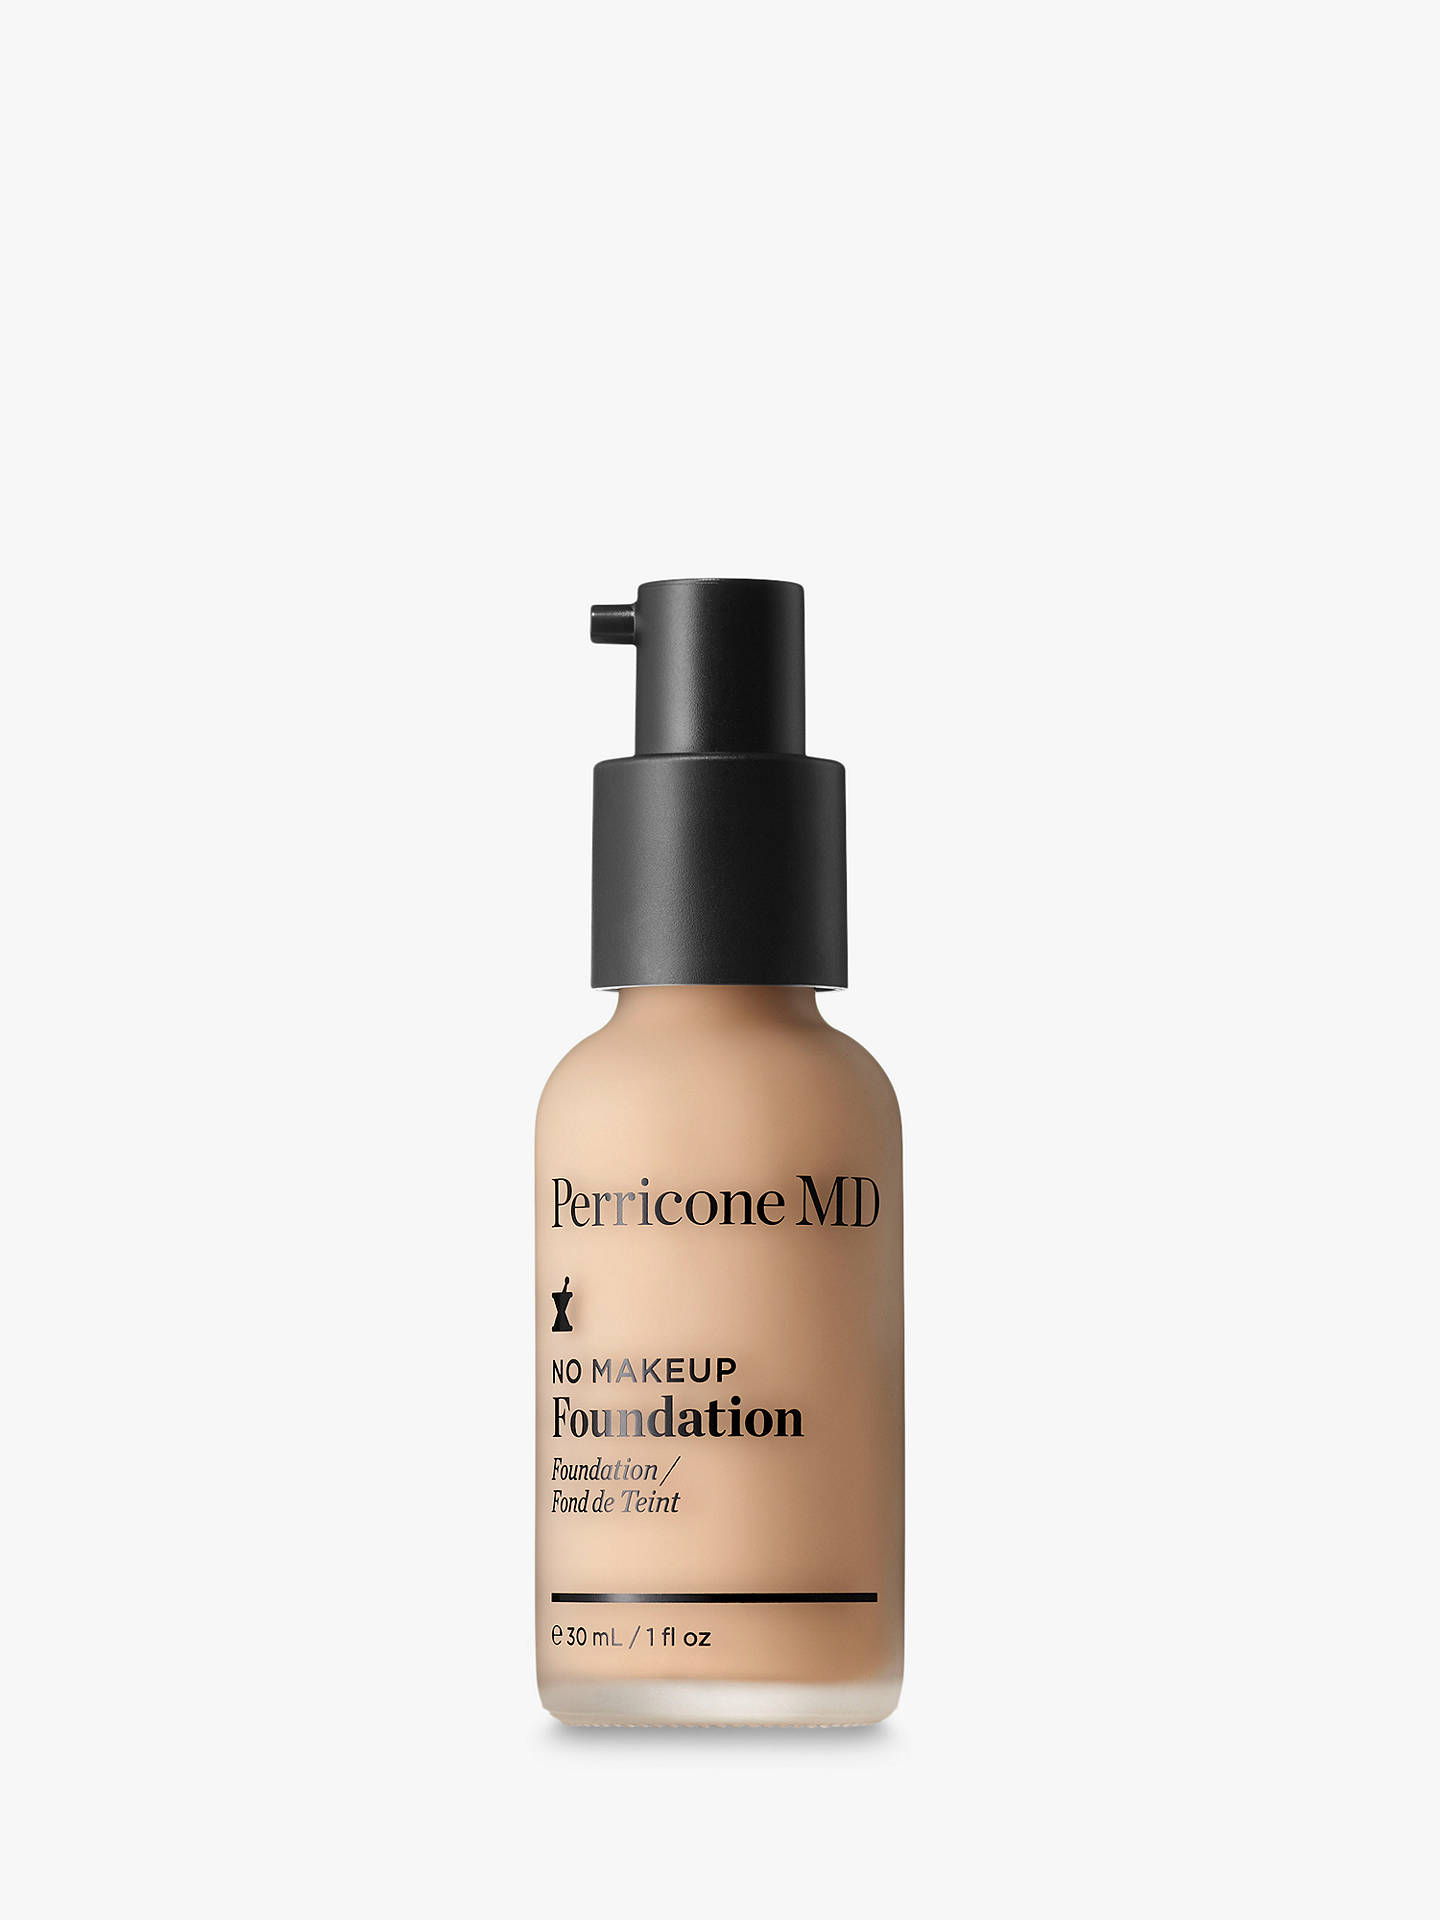 Perricone MD - No Makeup Foundation SPF 30 - Fair by